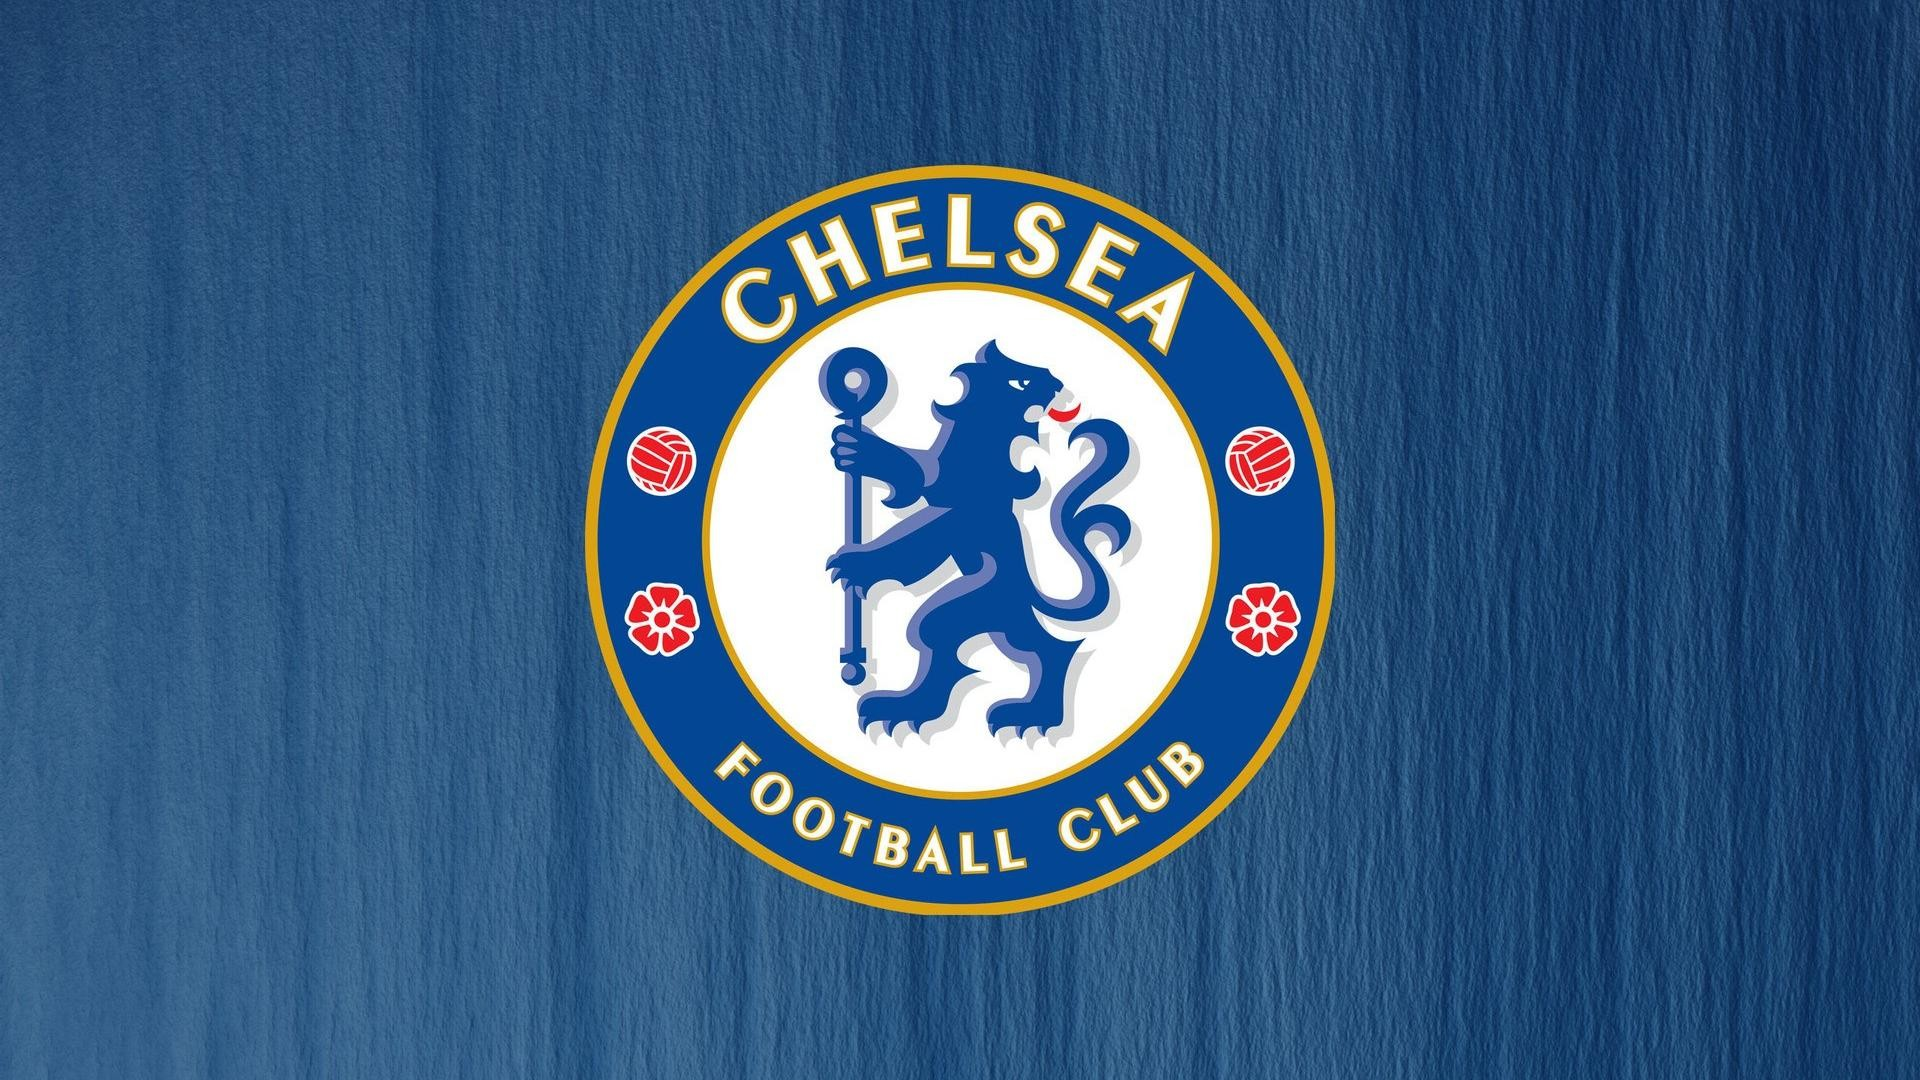 1920x1080 Chelsea football logo site pictures | FootballPIX